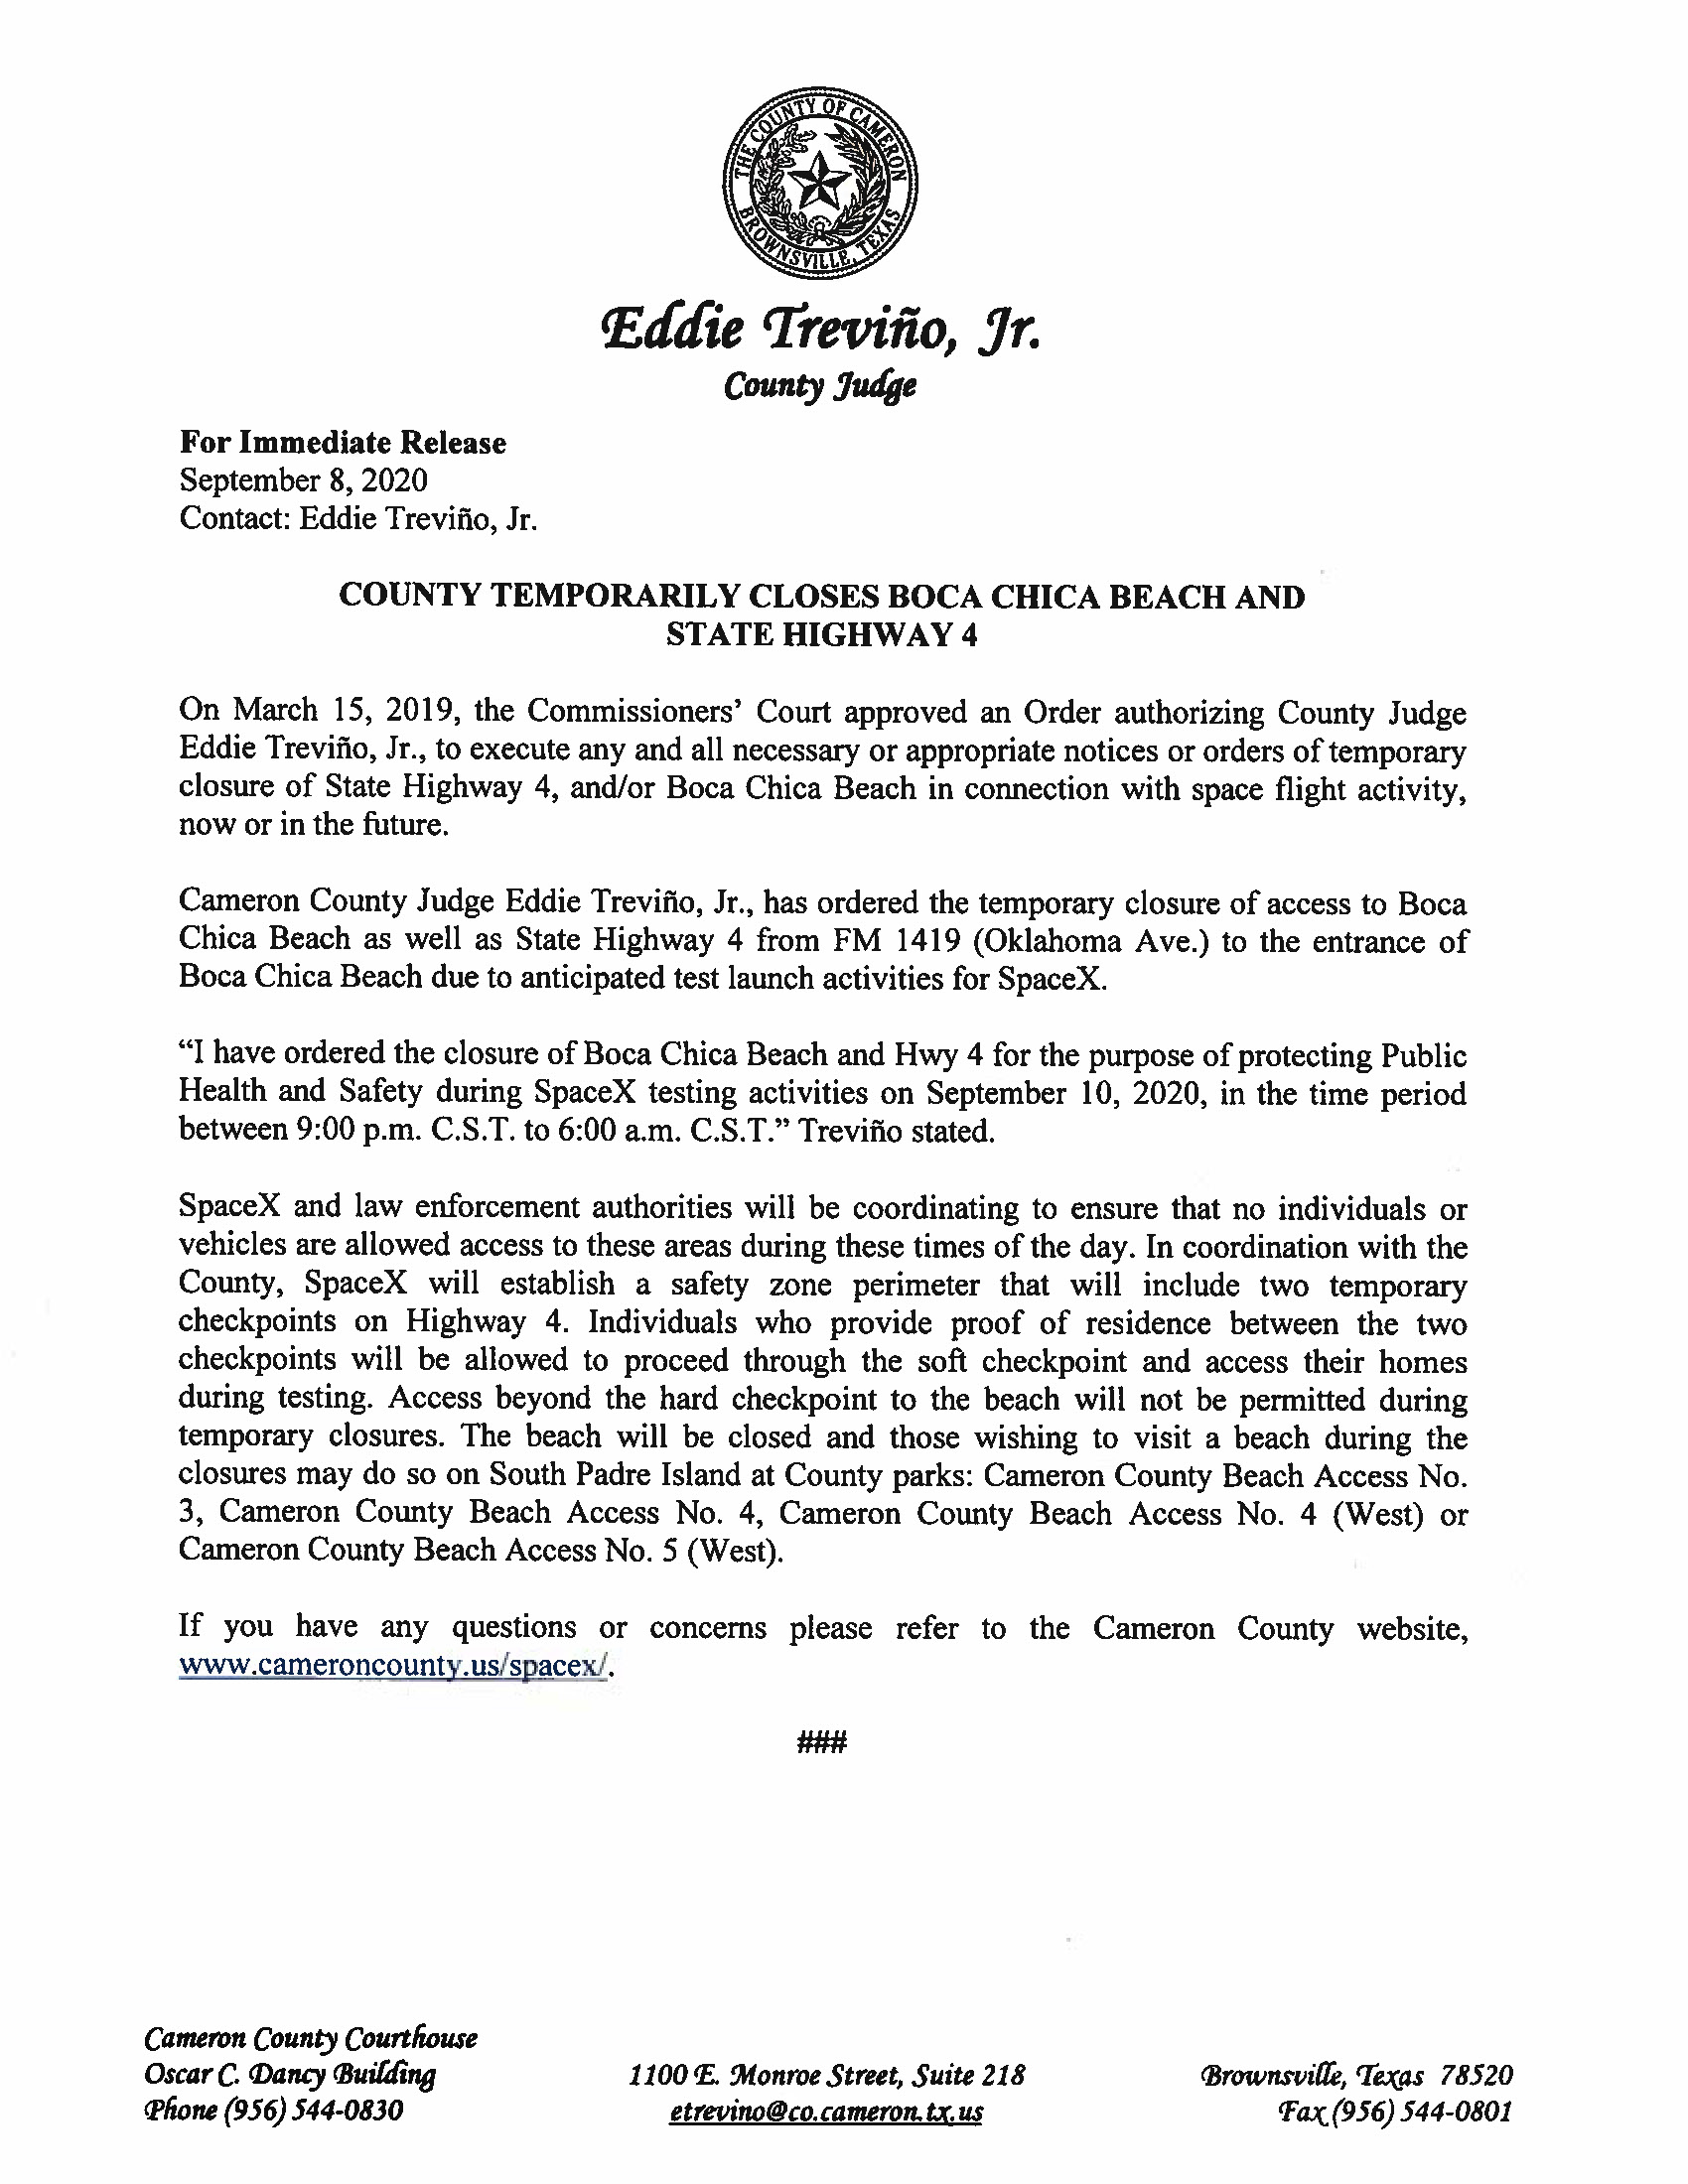 Press Release On Order Of Closure Related To SpaceX Flight English Spanish 9.10.20.doc Page 1